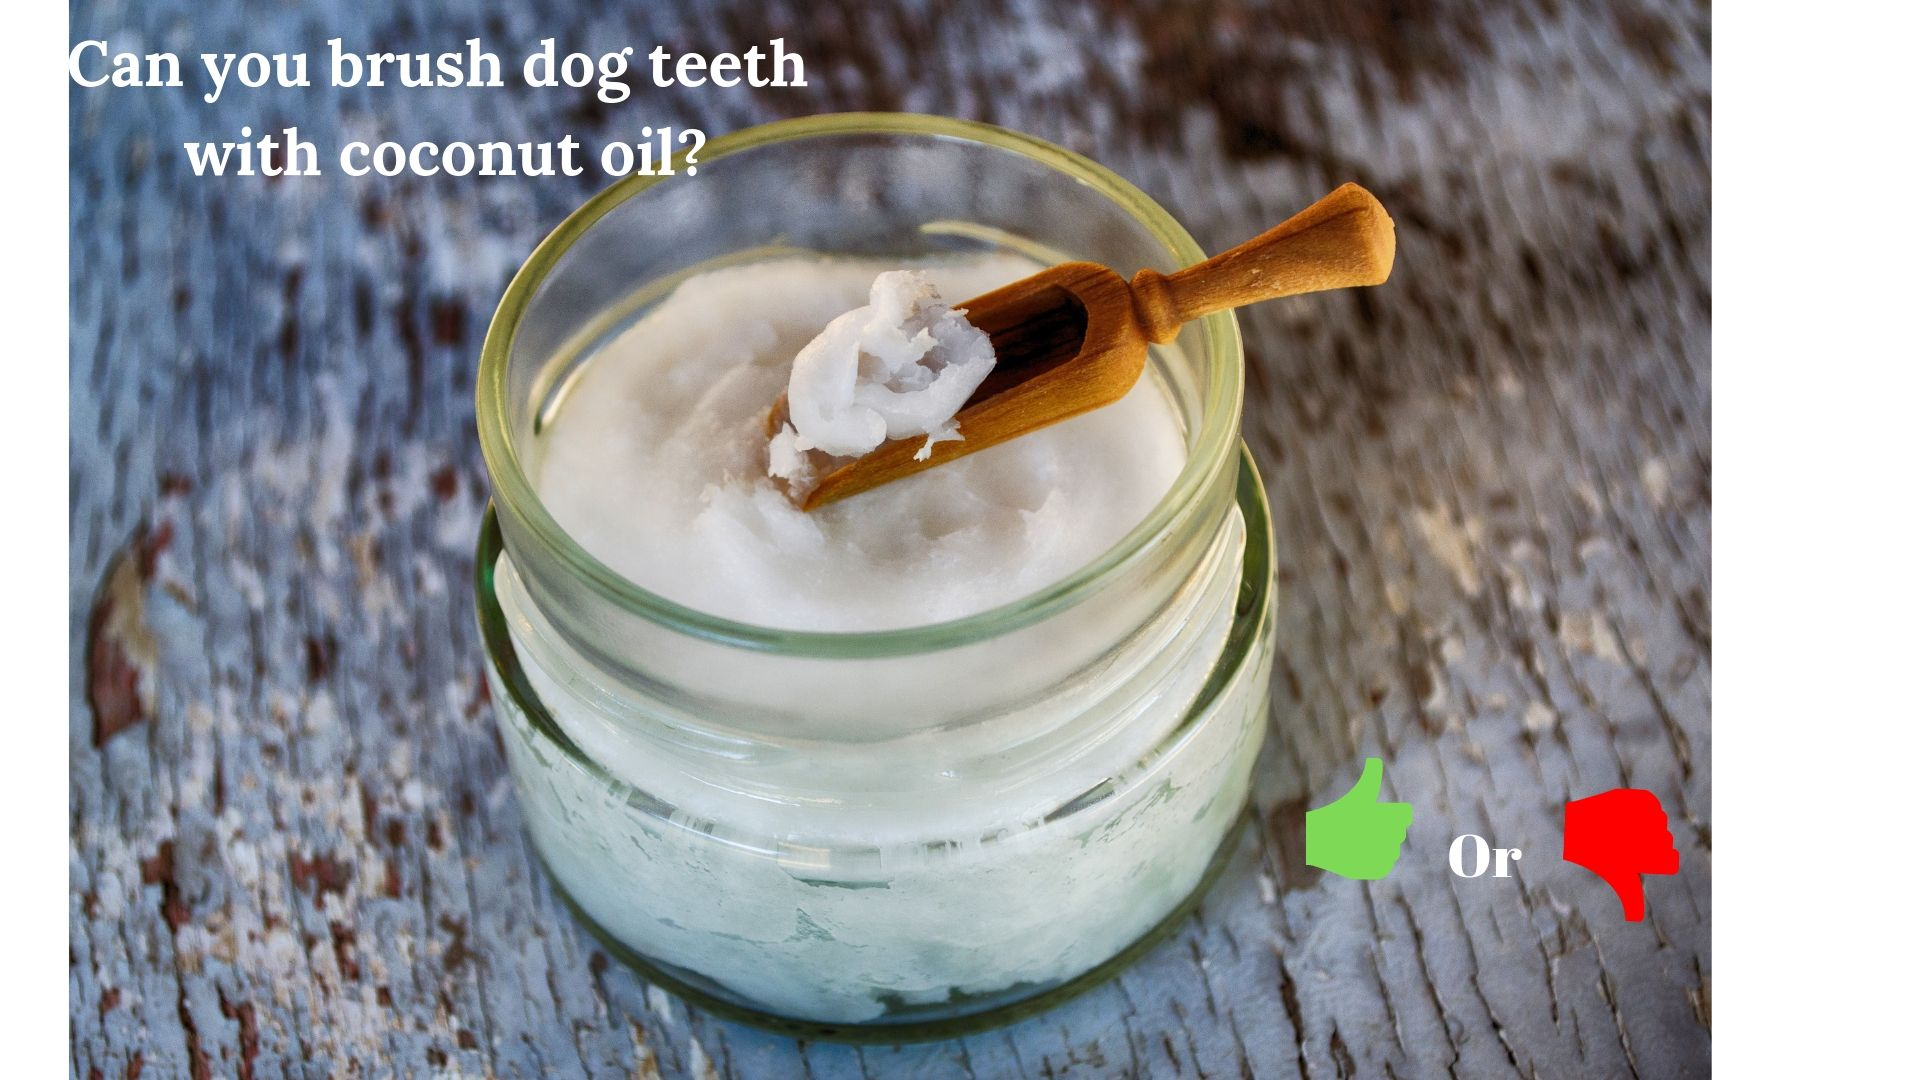 brush dog teeth with coconut oil | A jar ofCoconut Oil